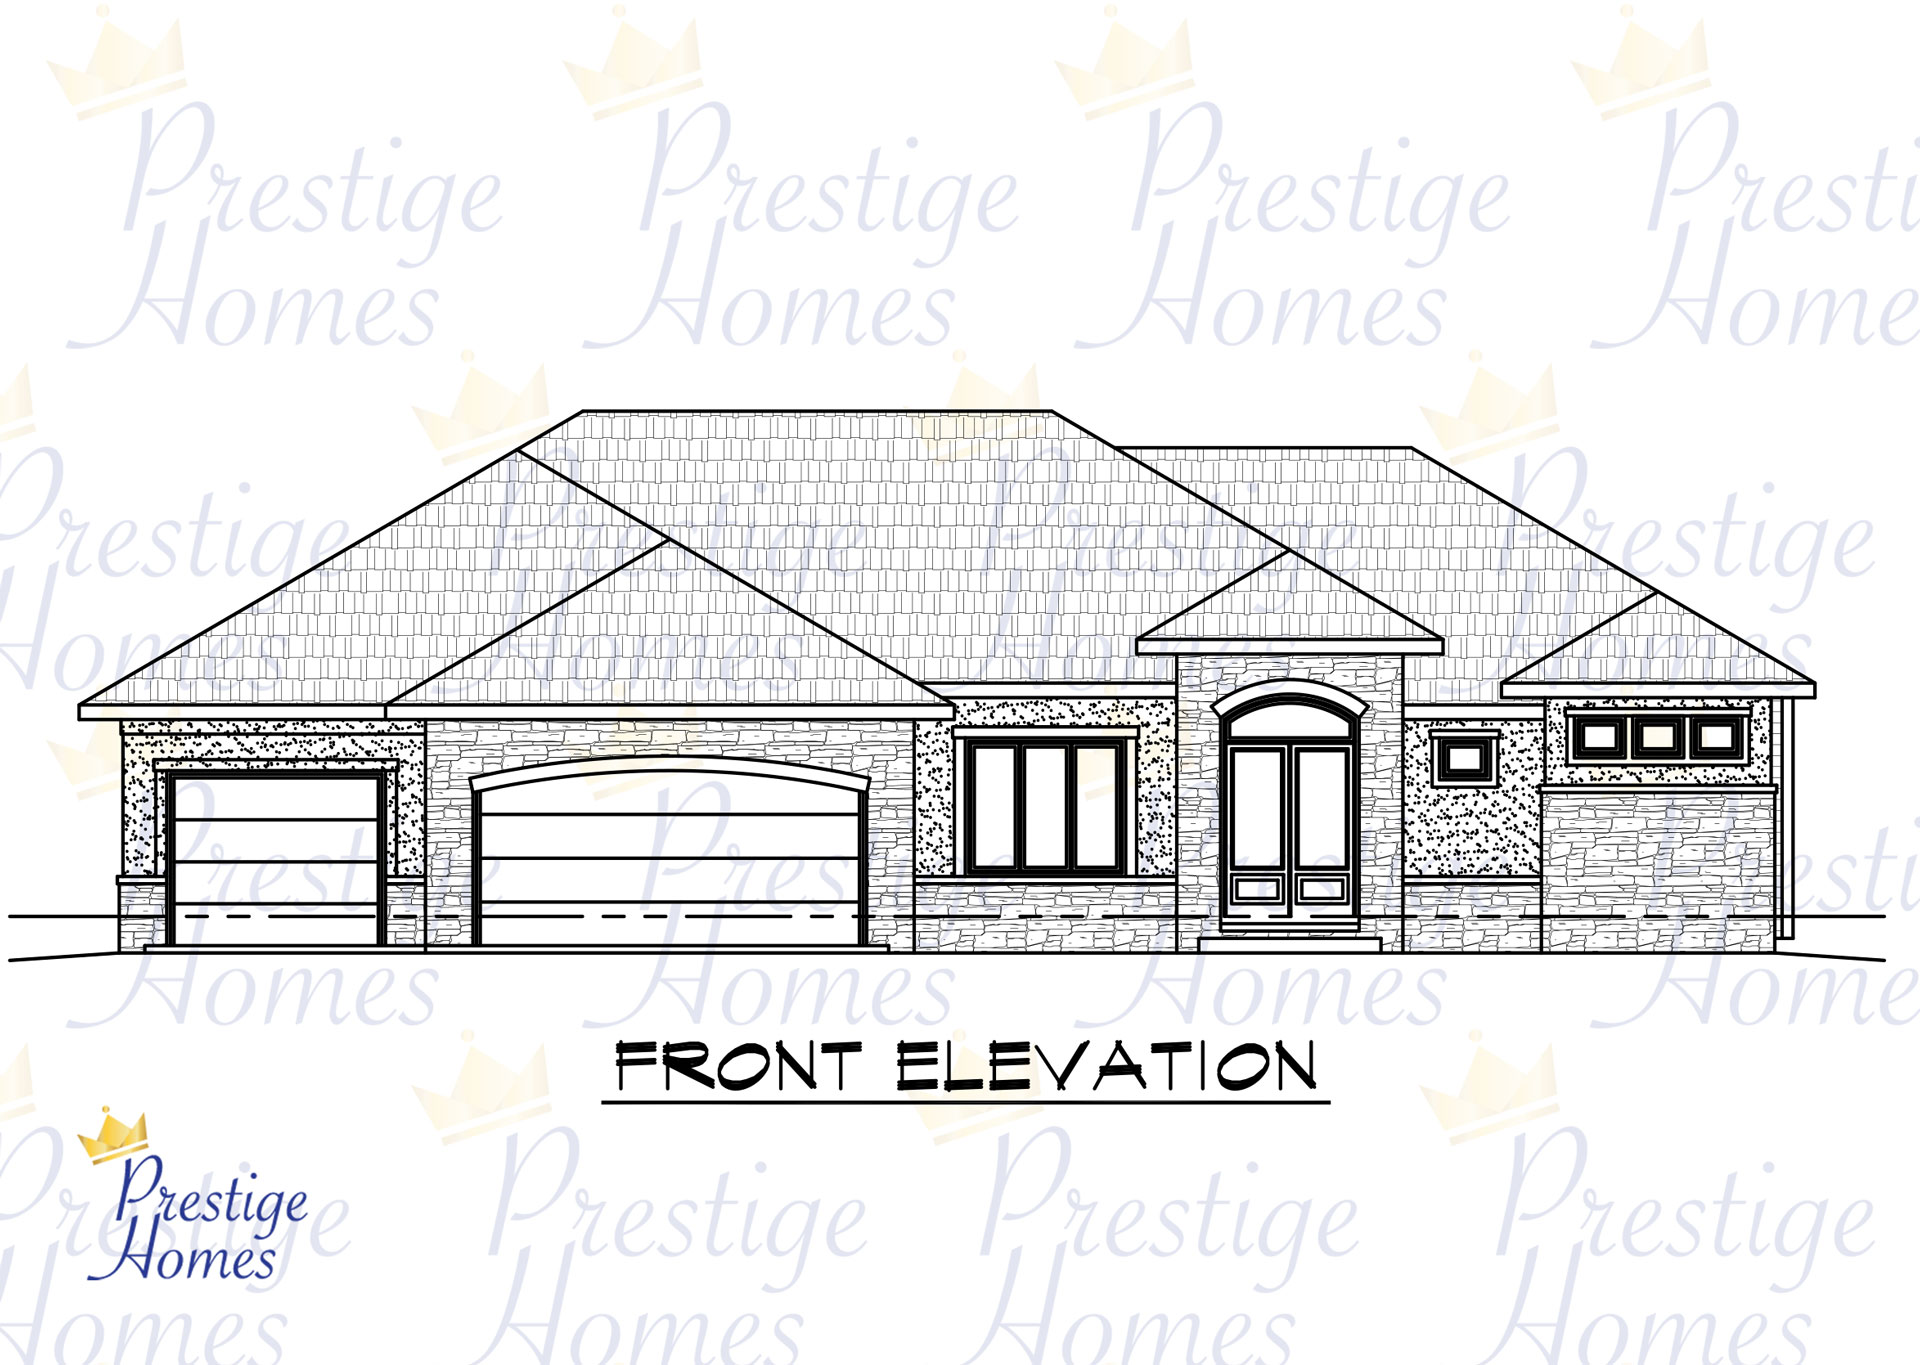 Prestige Homes - Floor Plan - Bella 4 Bedroom Front